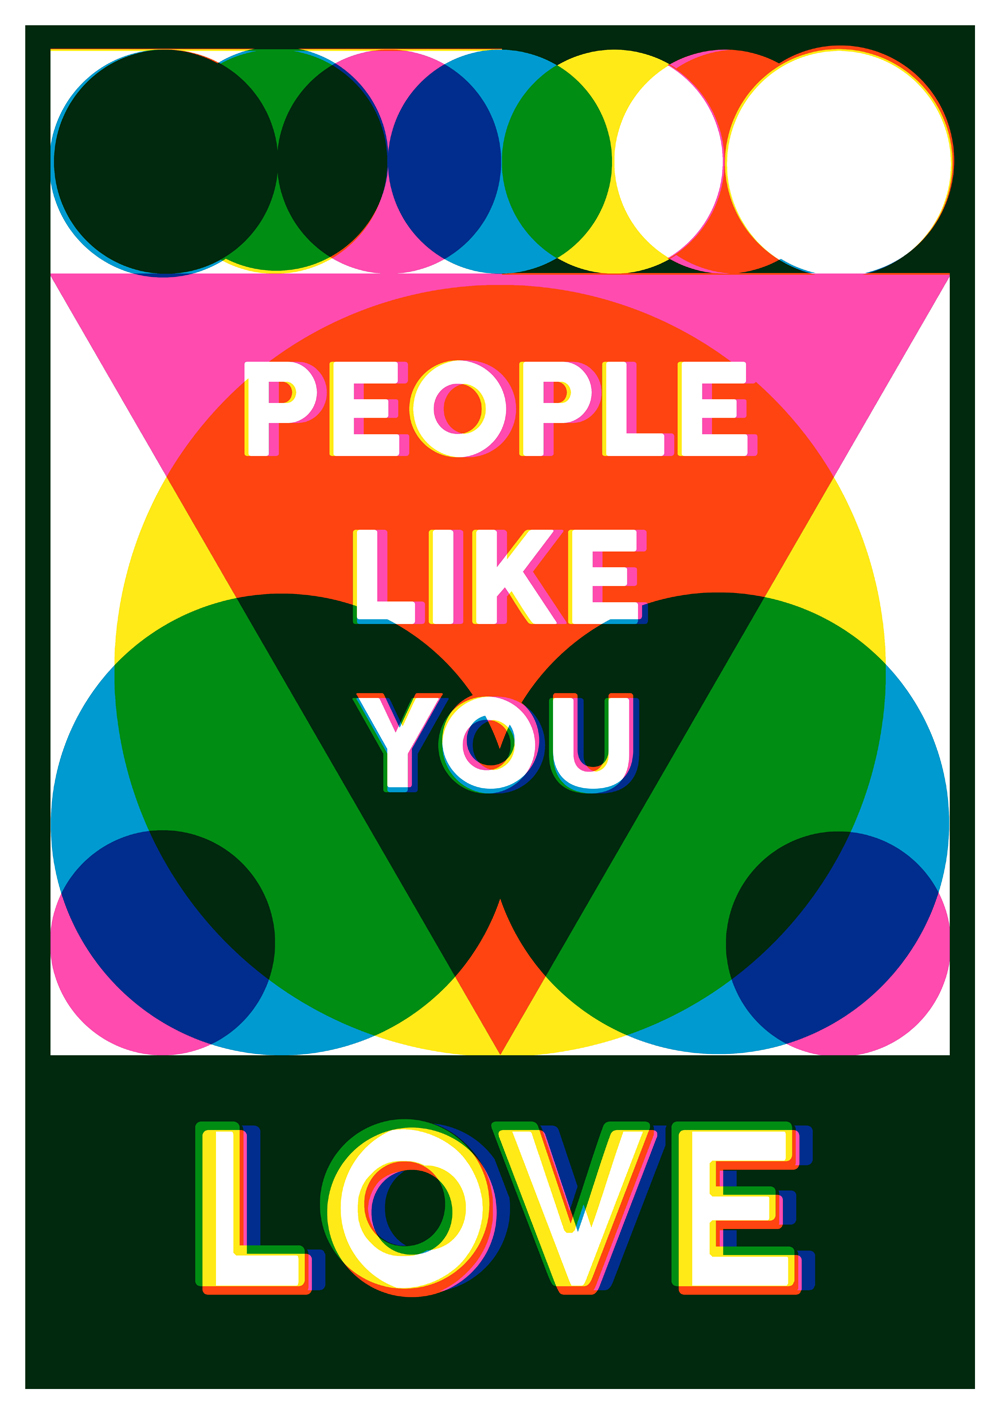 'People Like You Love' one of a series of posters by Jacob Love for Margate Pride